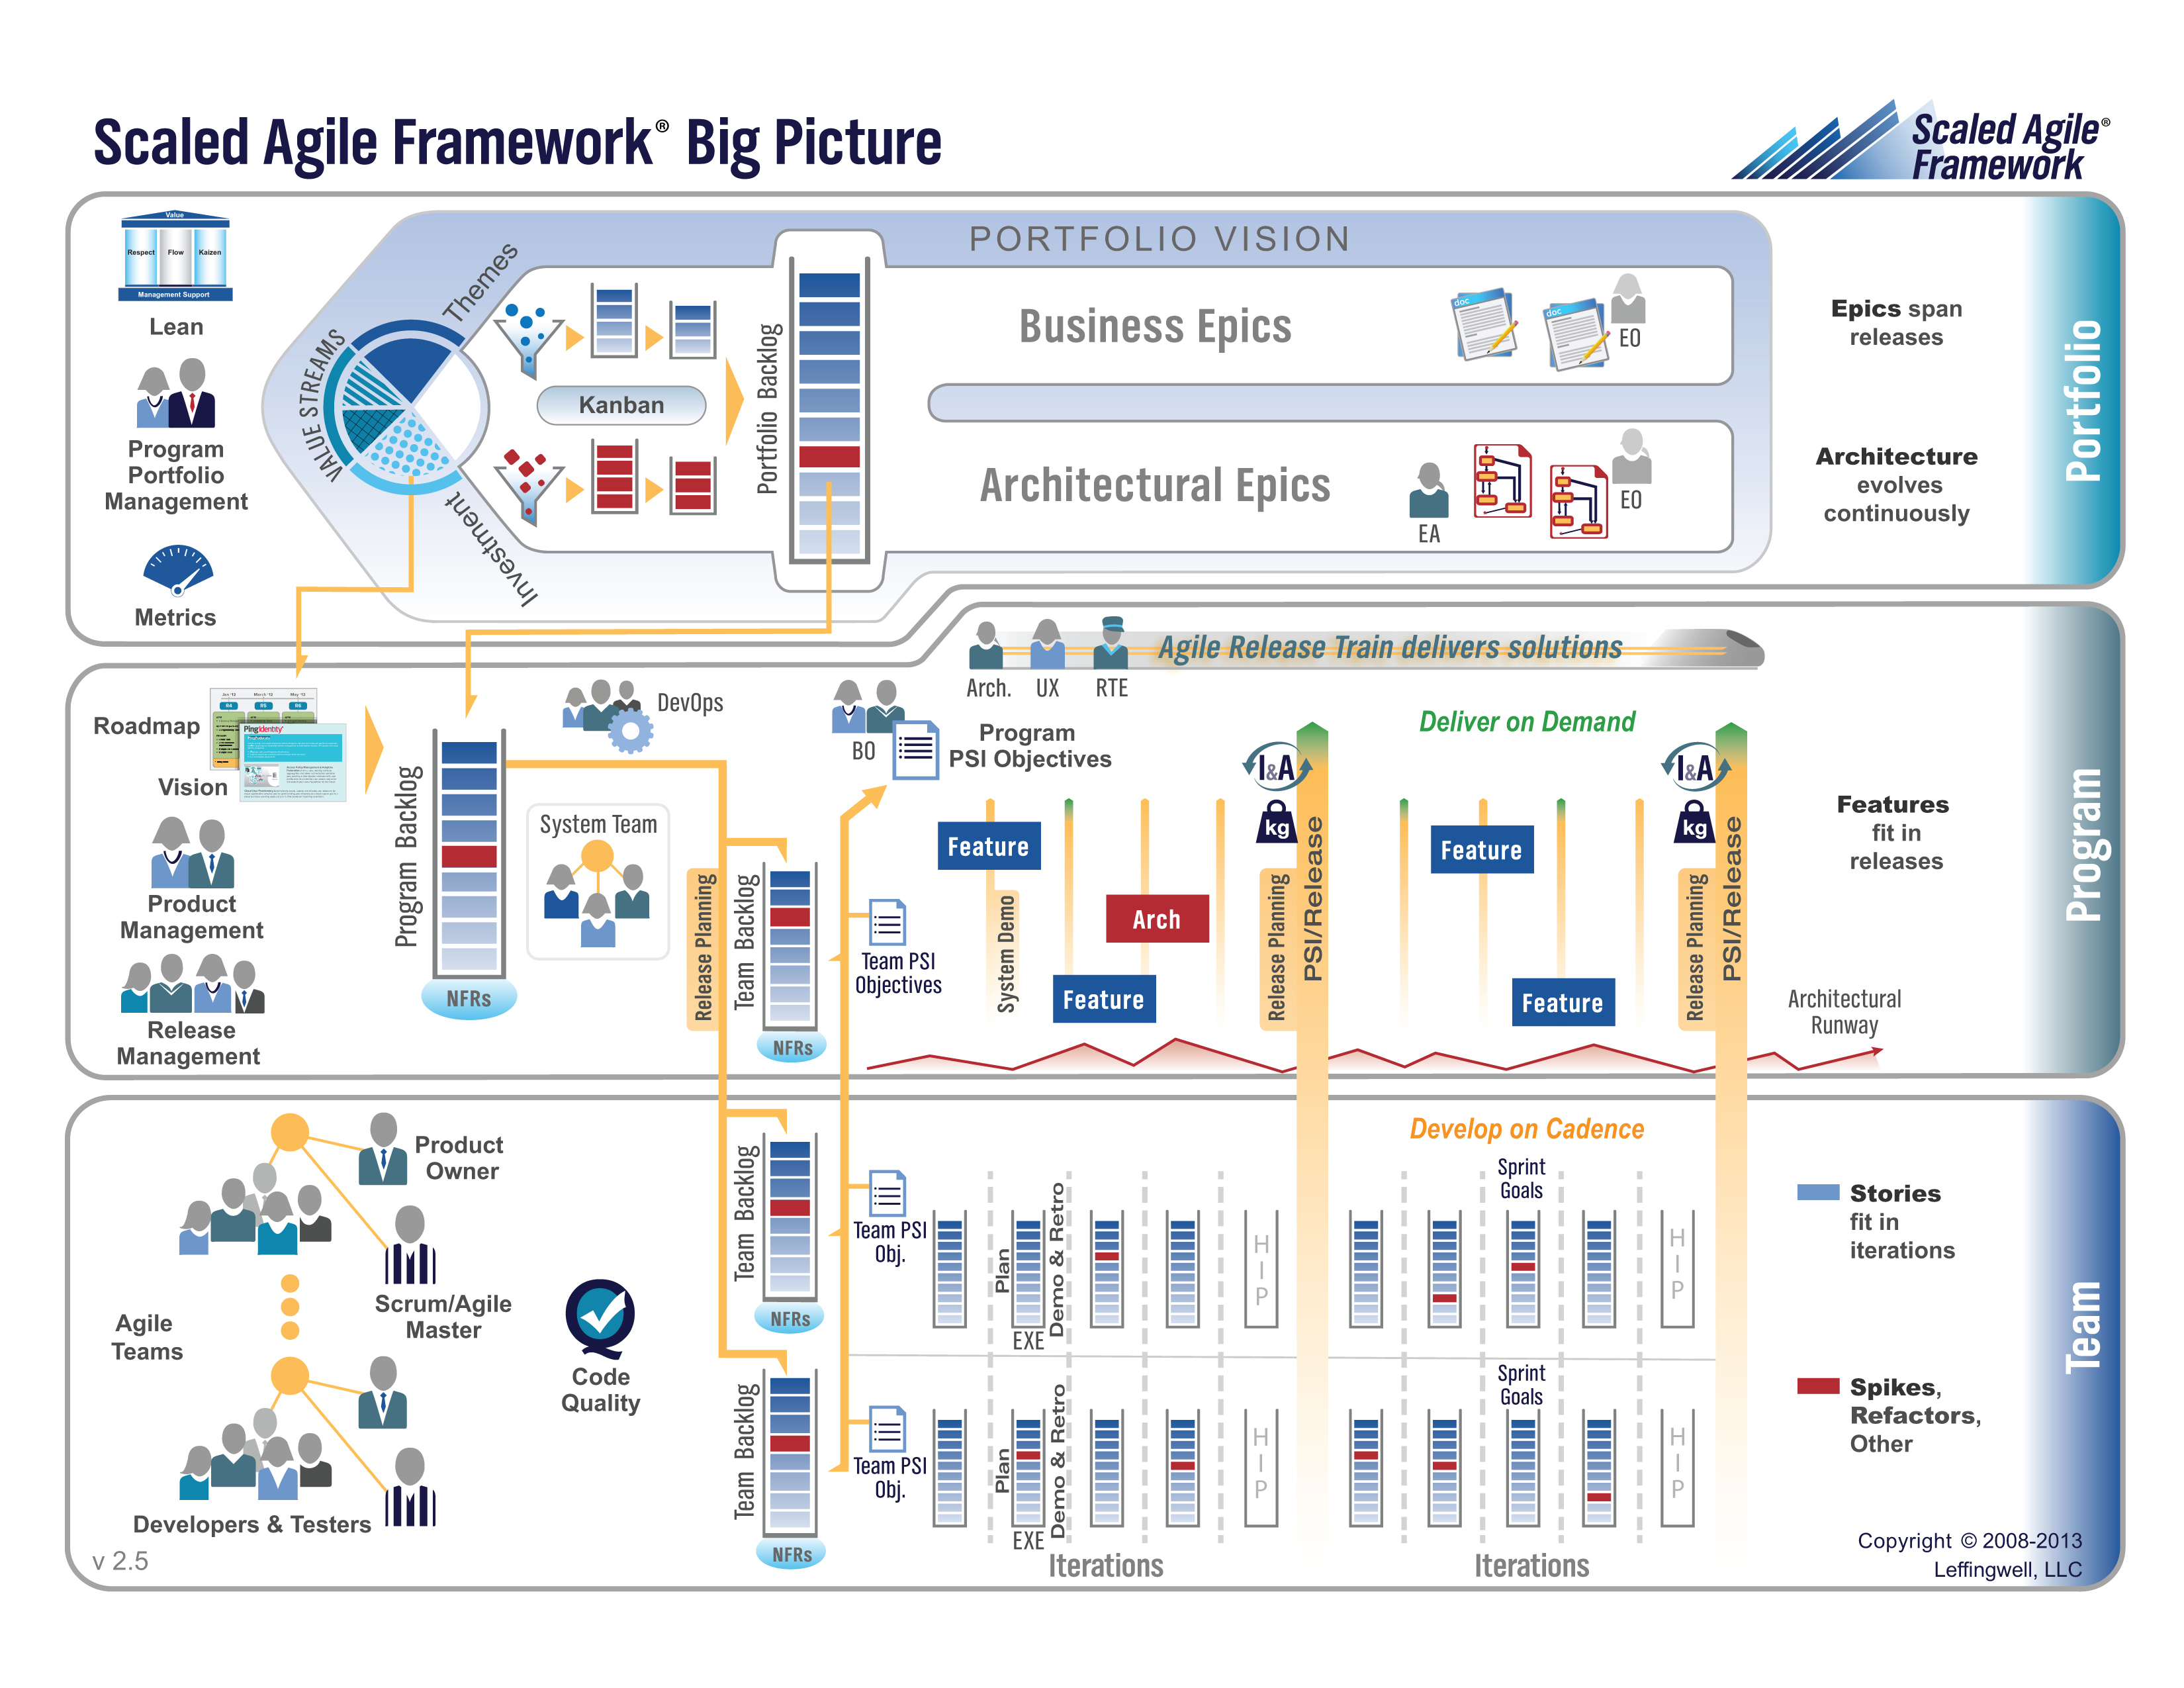 process flow diagram vs value stream map announcing a new release of the scaled agile framework  announcing a new release of the scaled agile framework